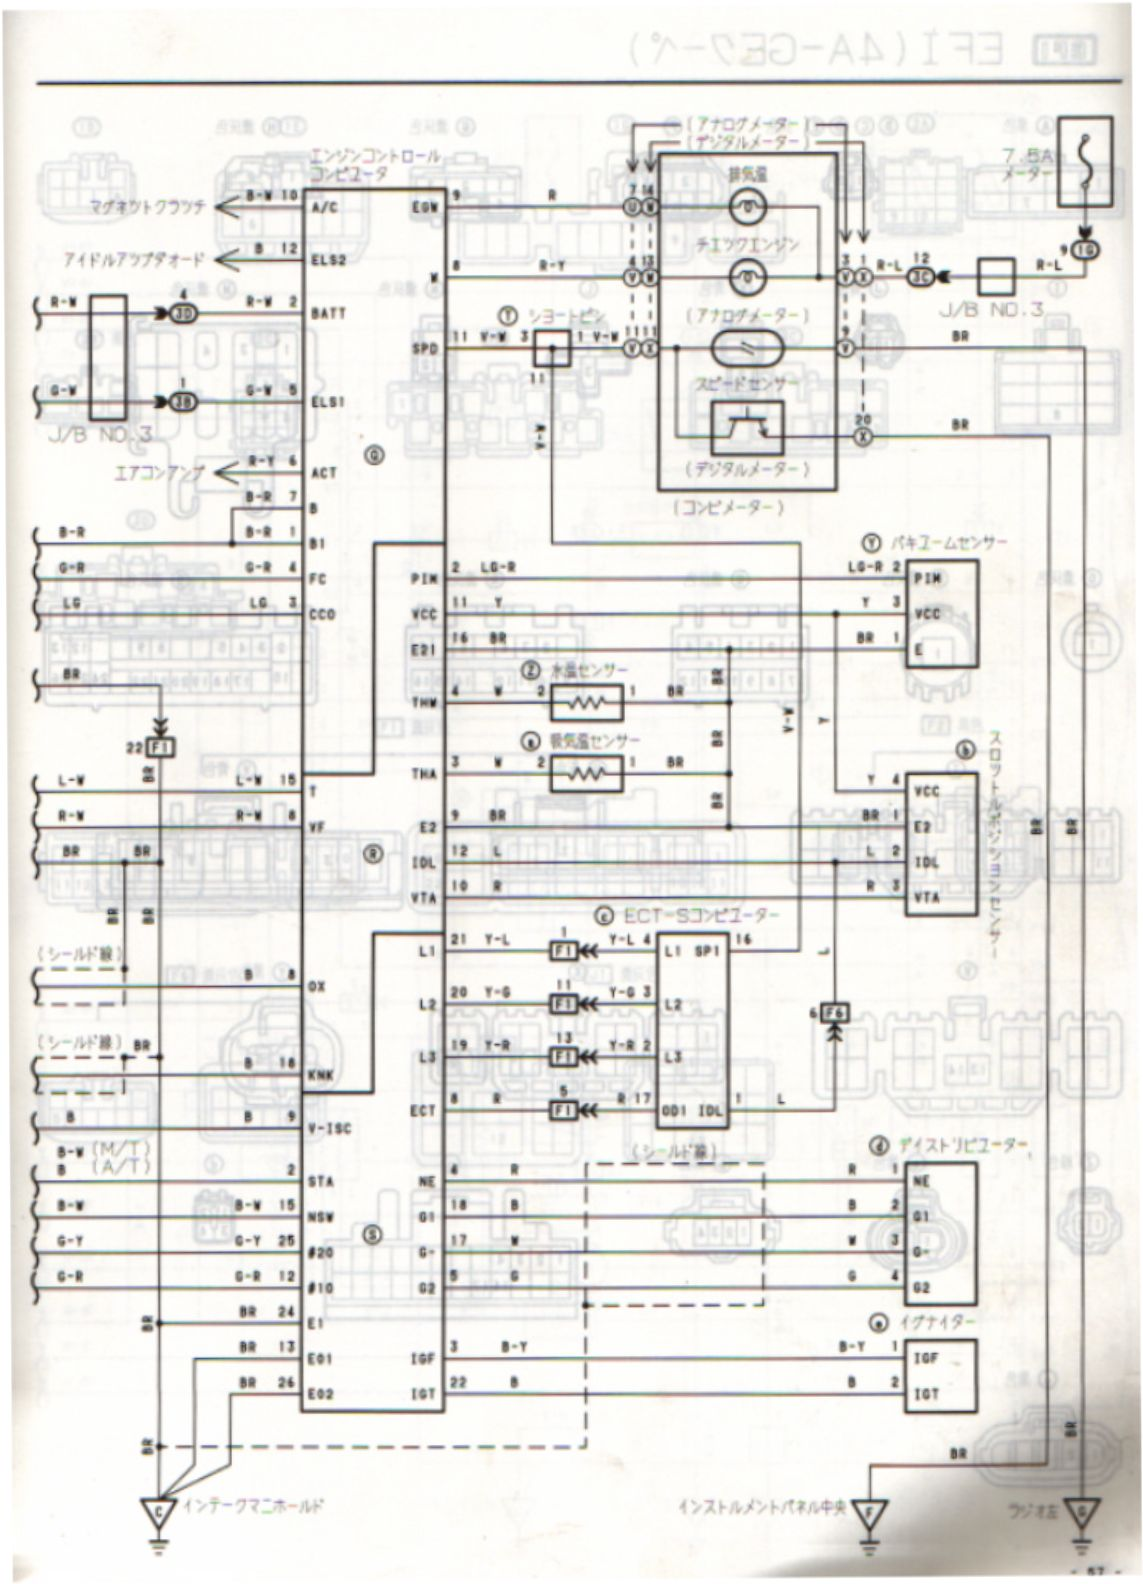 Toyota Corolla Air Conditioner Diagram Toyota Wiring